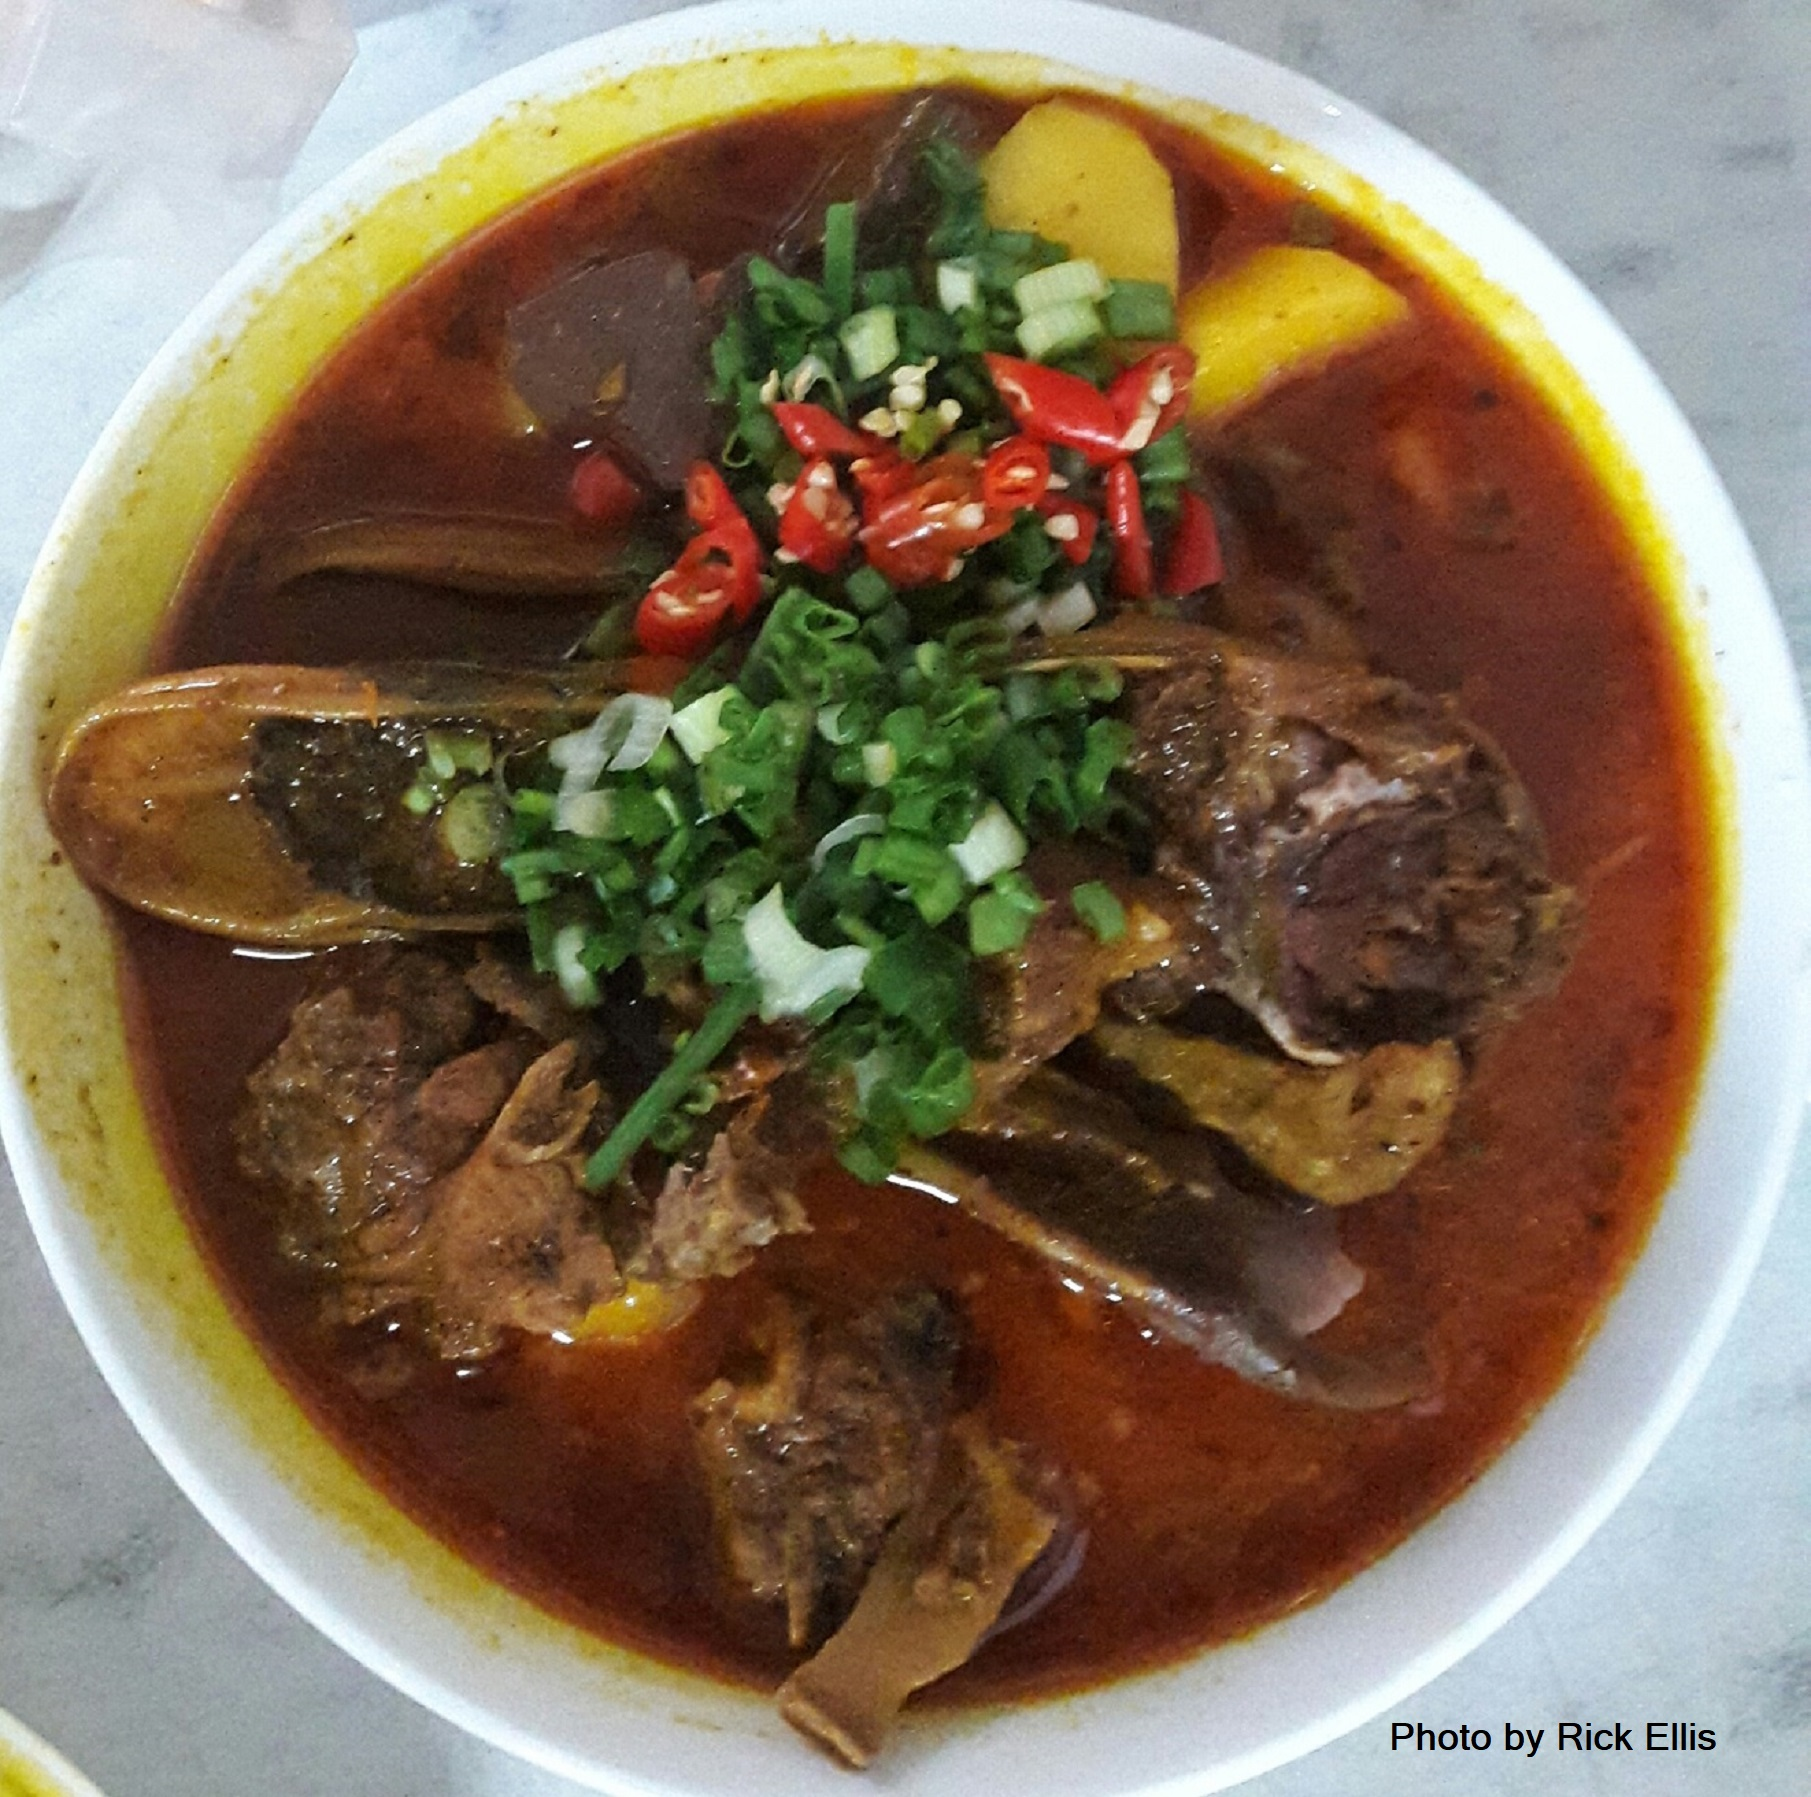 A wicked bowl of 'cà ri vịt' (thick duck curry served with 'bánh mì' baguette) sold at an unnamed street stall in Da Lat City, Lam Dong Province, Vietnam. Photo: Rick Ellis